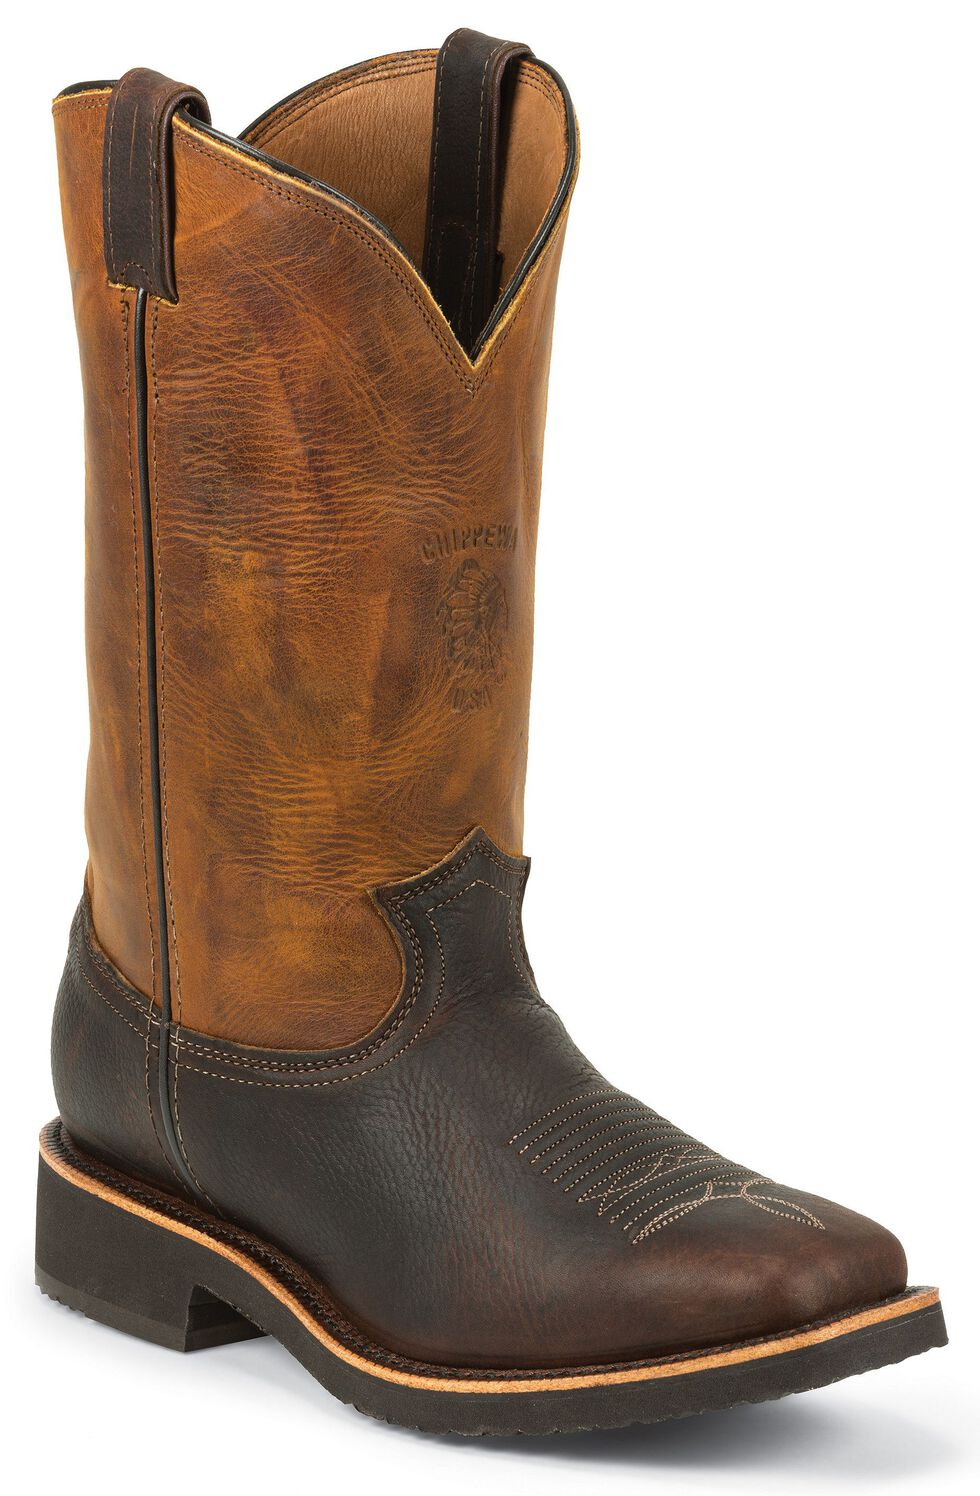 Chippewa Crazy Horse Pitstop Work Boots - Square Toe, Brown, hi-res